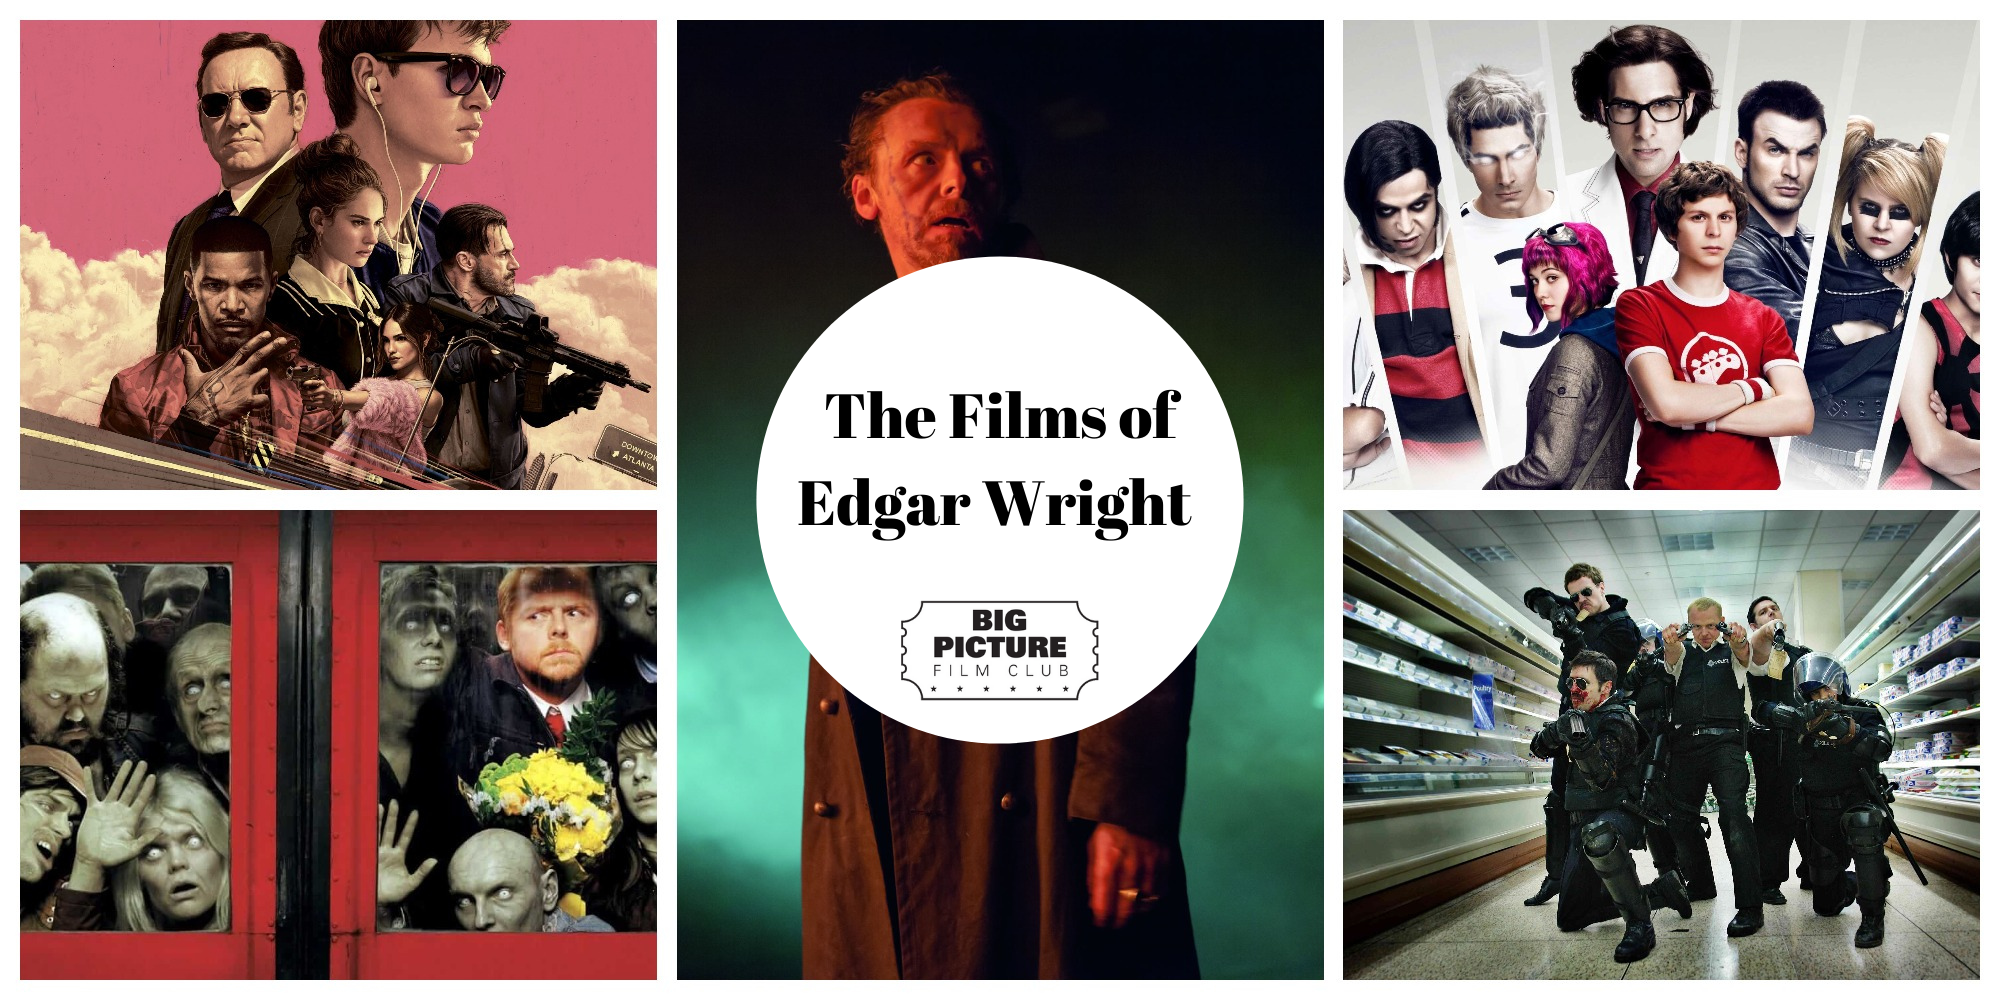 The Films of Edgar Wright